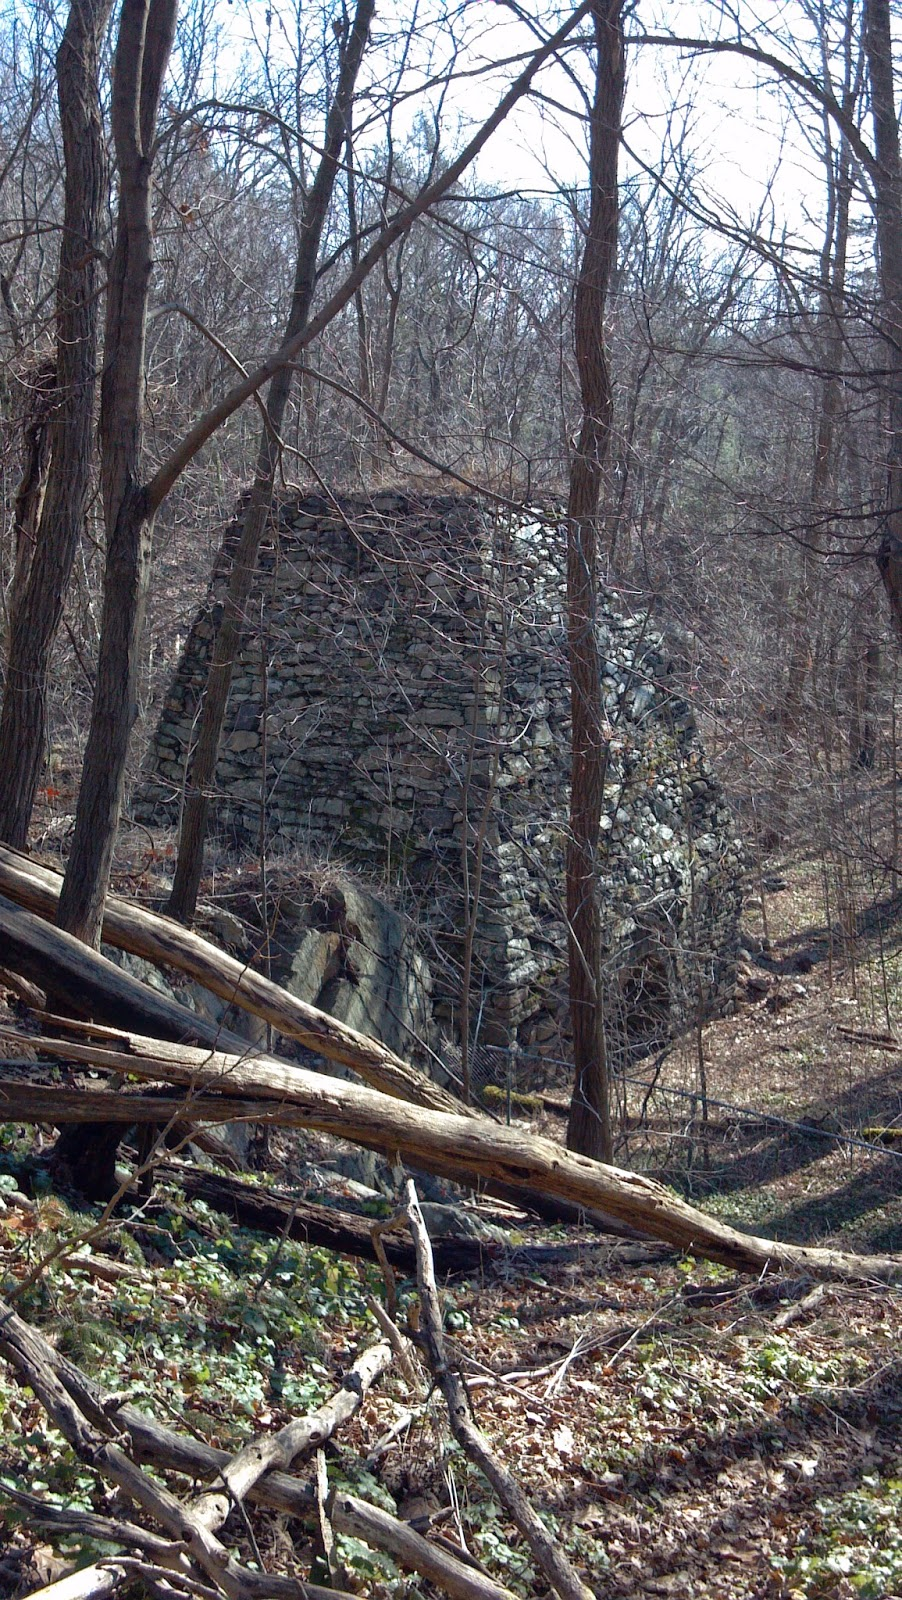 Clinton Road, West Milford, Clinton Furnace, Hidden New Jersey